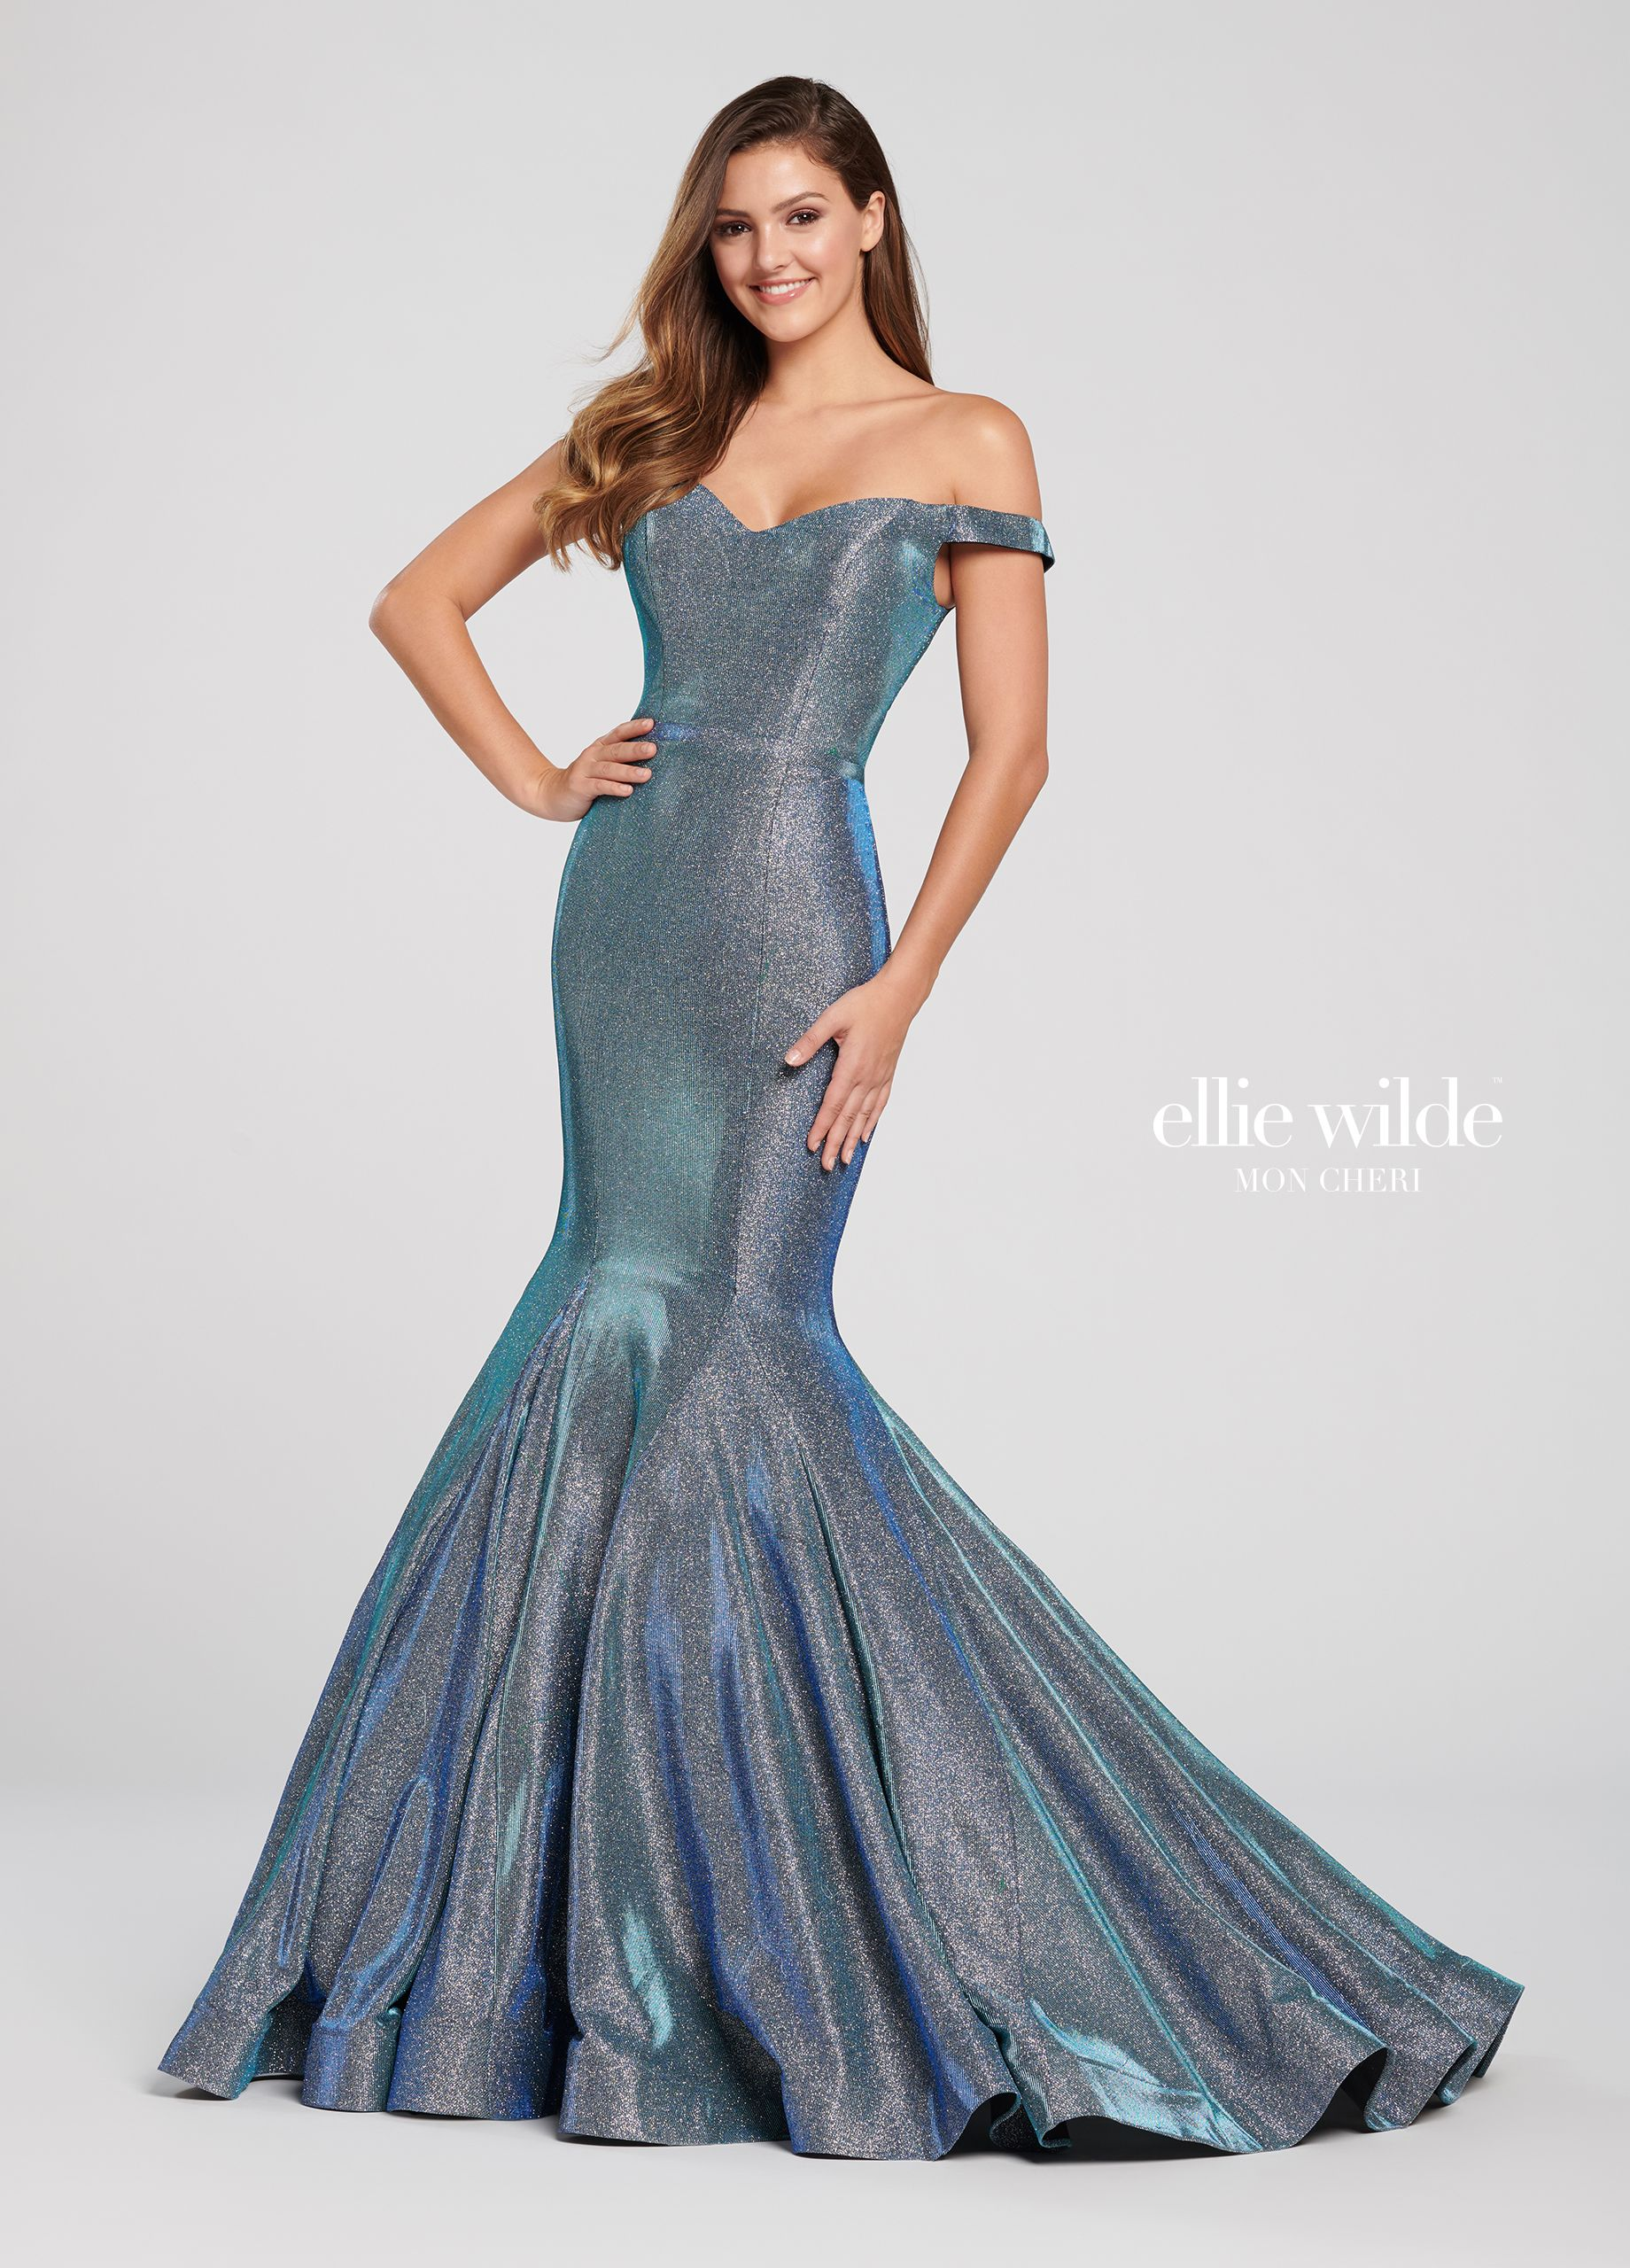 7cbaf343fb Ellie Wilde EW119061 - Live out your mermaid fantasies in this illuminating  off-the-shoulder novelty stretch glitter mermaid gown with princess lines